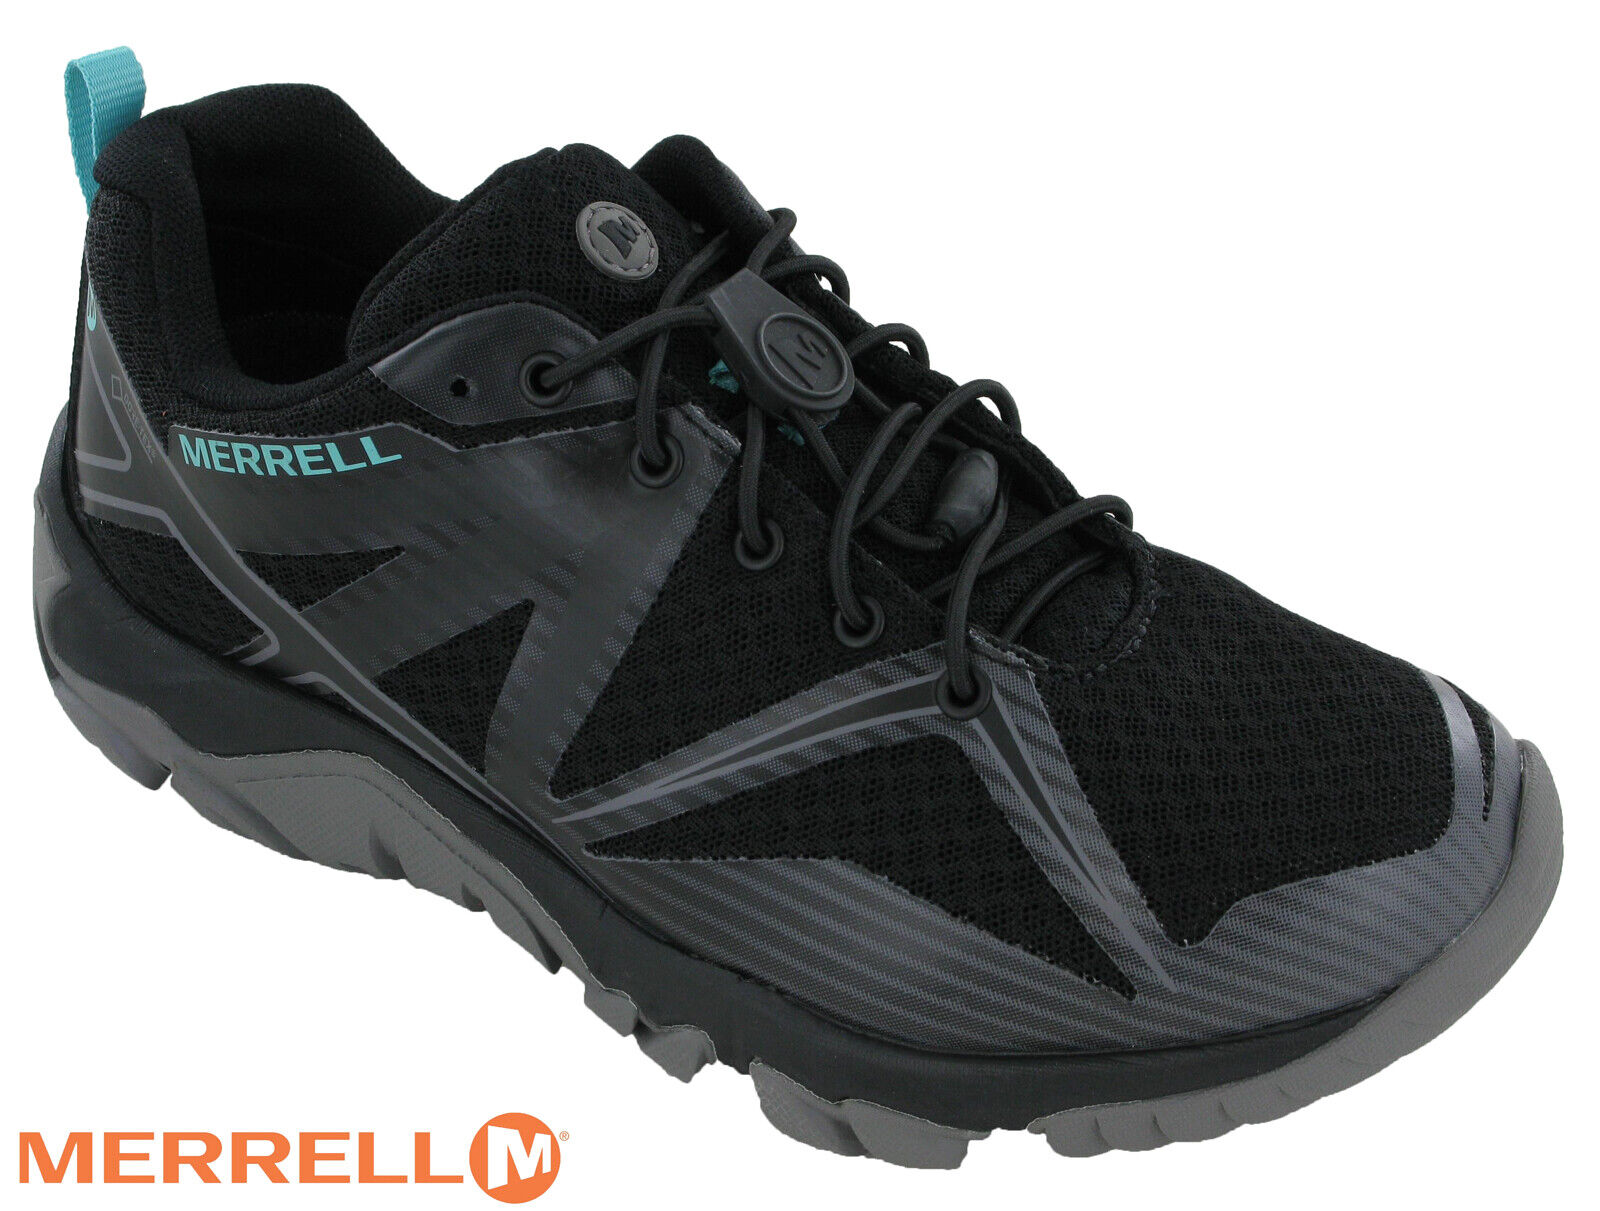 Merrell MQM Edge Stretch Gore Tex  Lace donna Trainers Lightweight Walking scarpe  conveniente